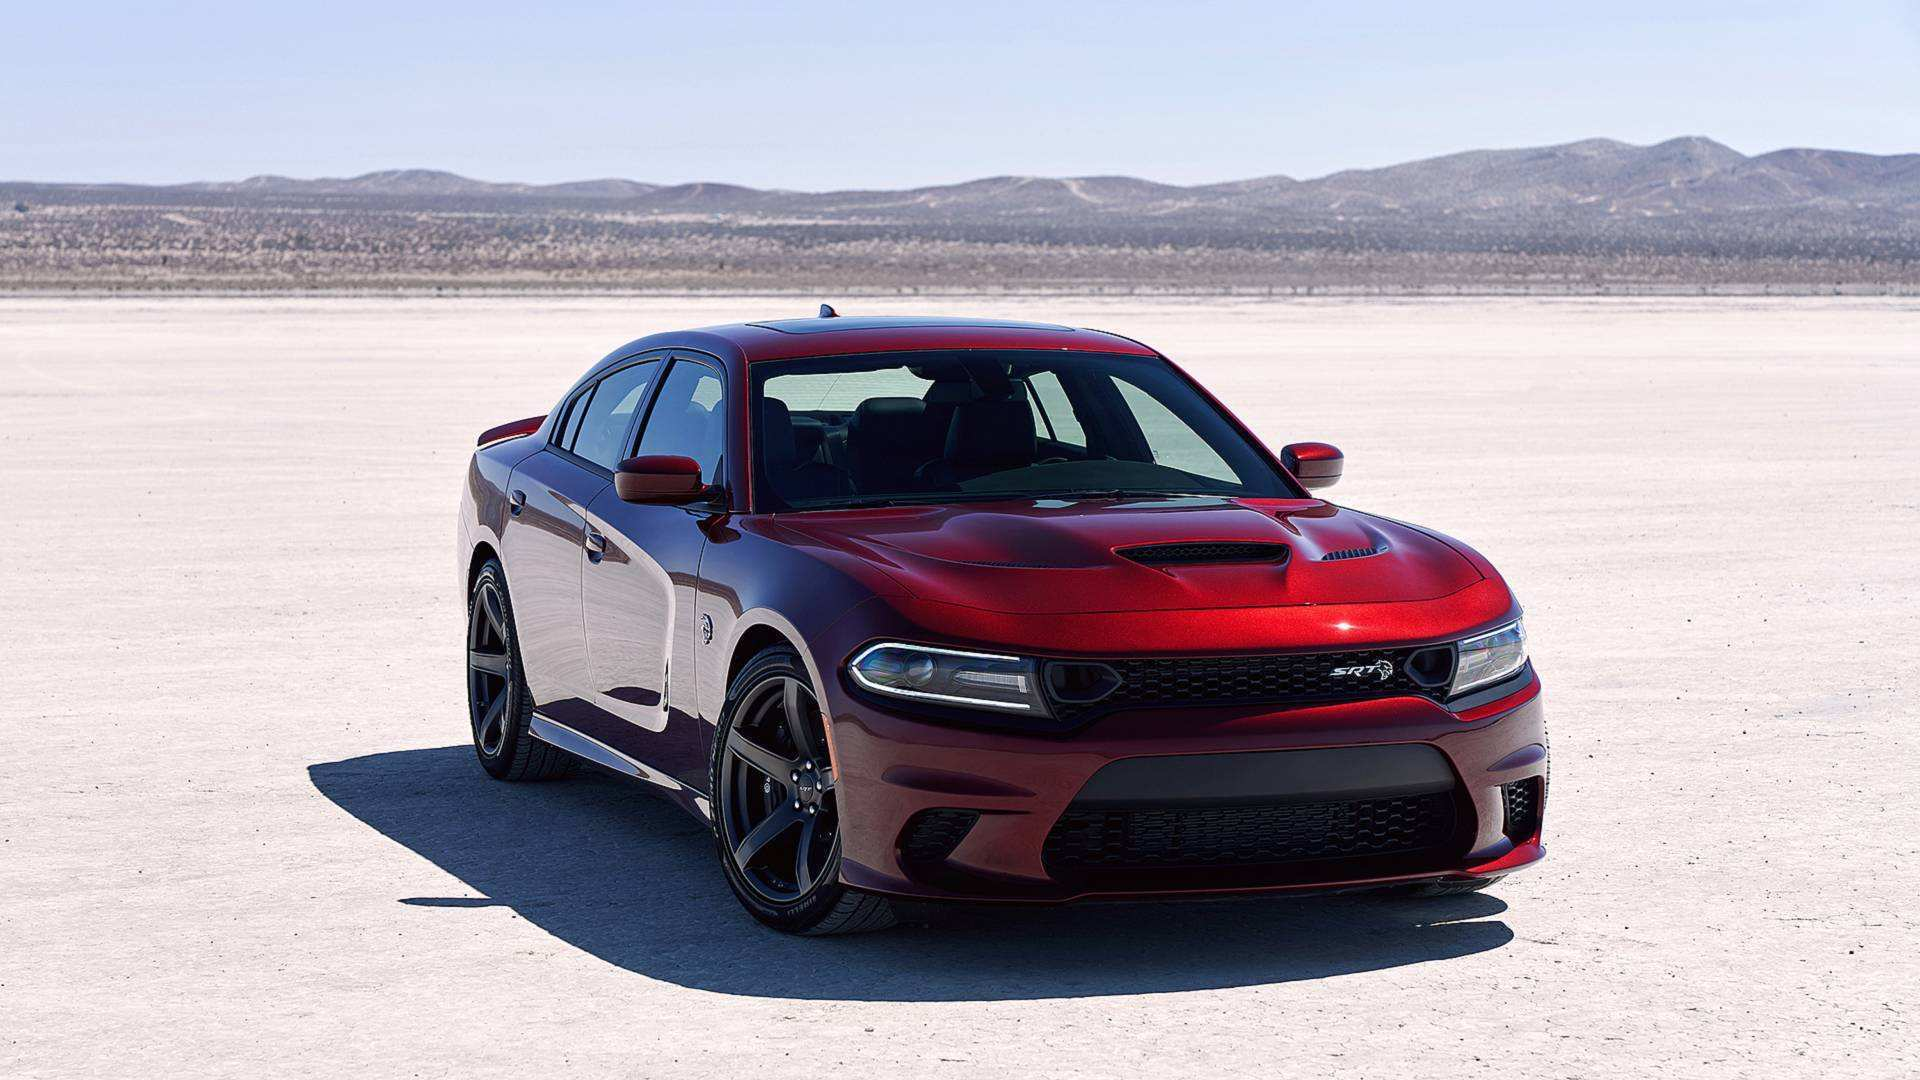 22 A Pictures Of 2020 Dodge Charger Concept